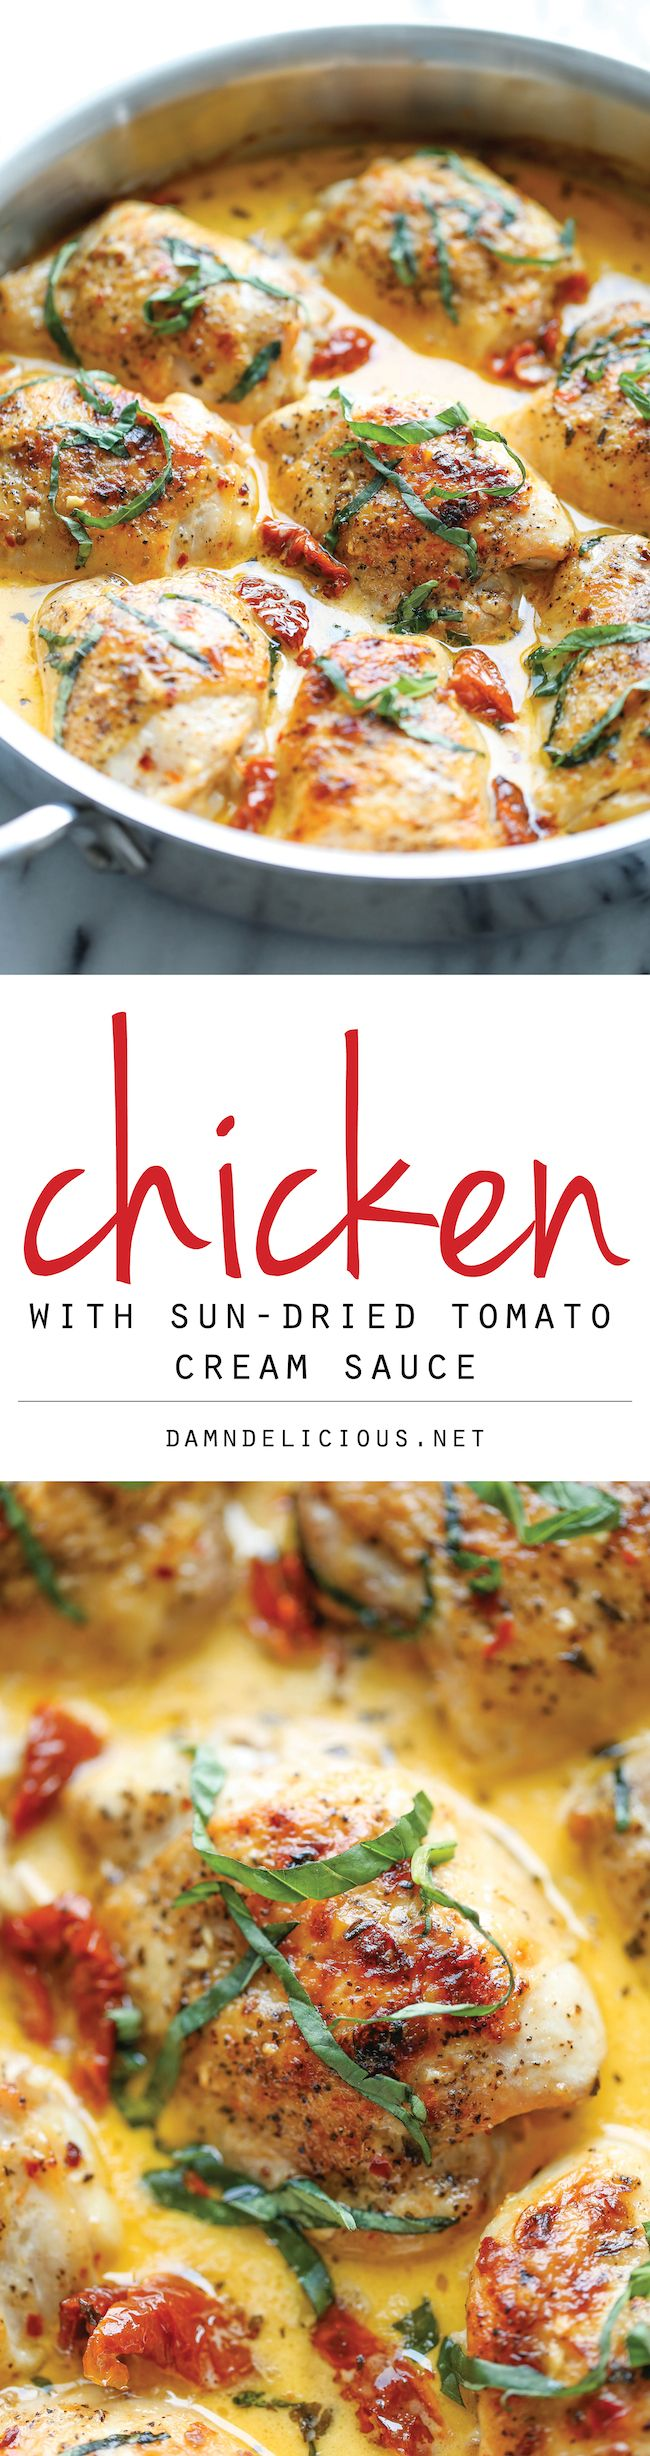 Chicken with Sun-Dried Tomato Cream Sauce - Crisp-tender chicken